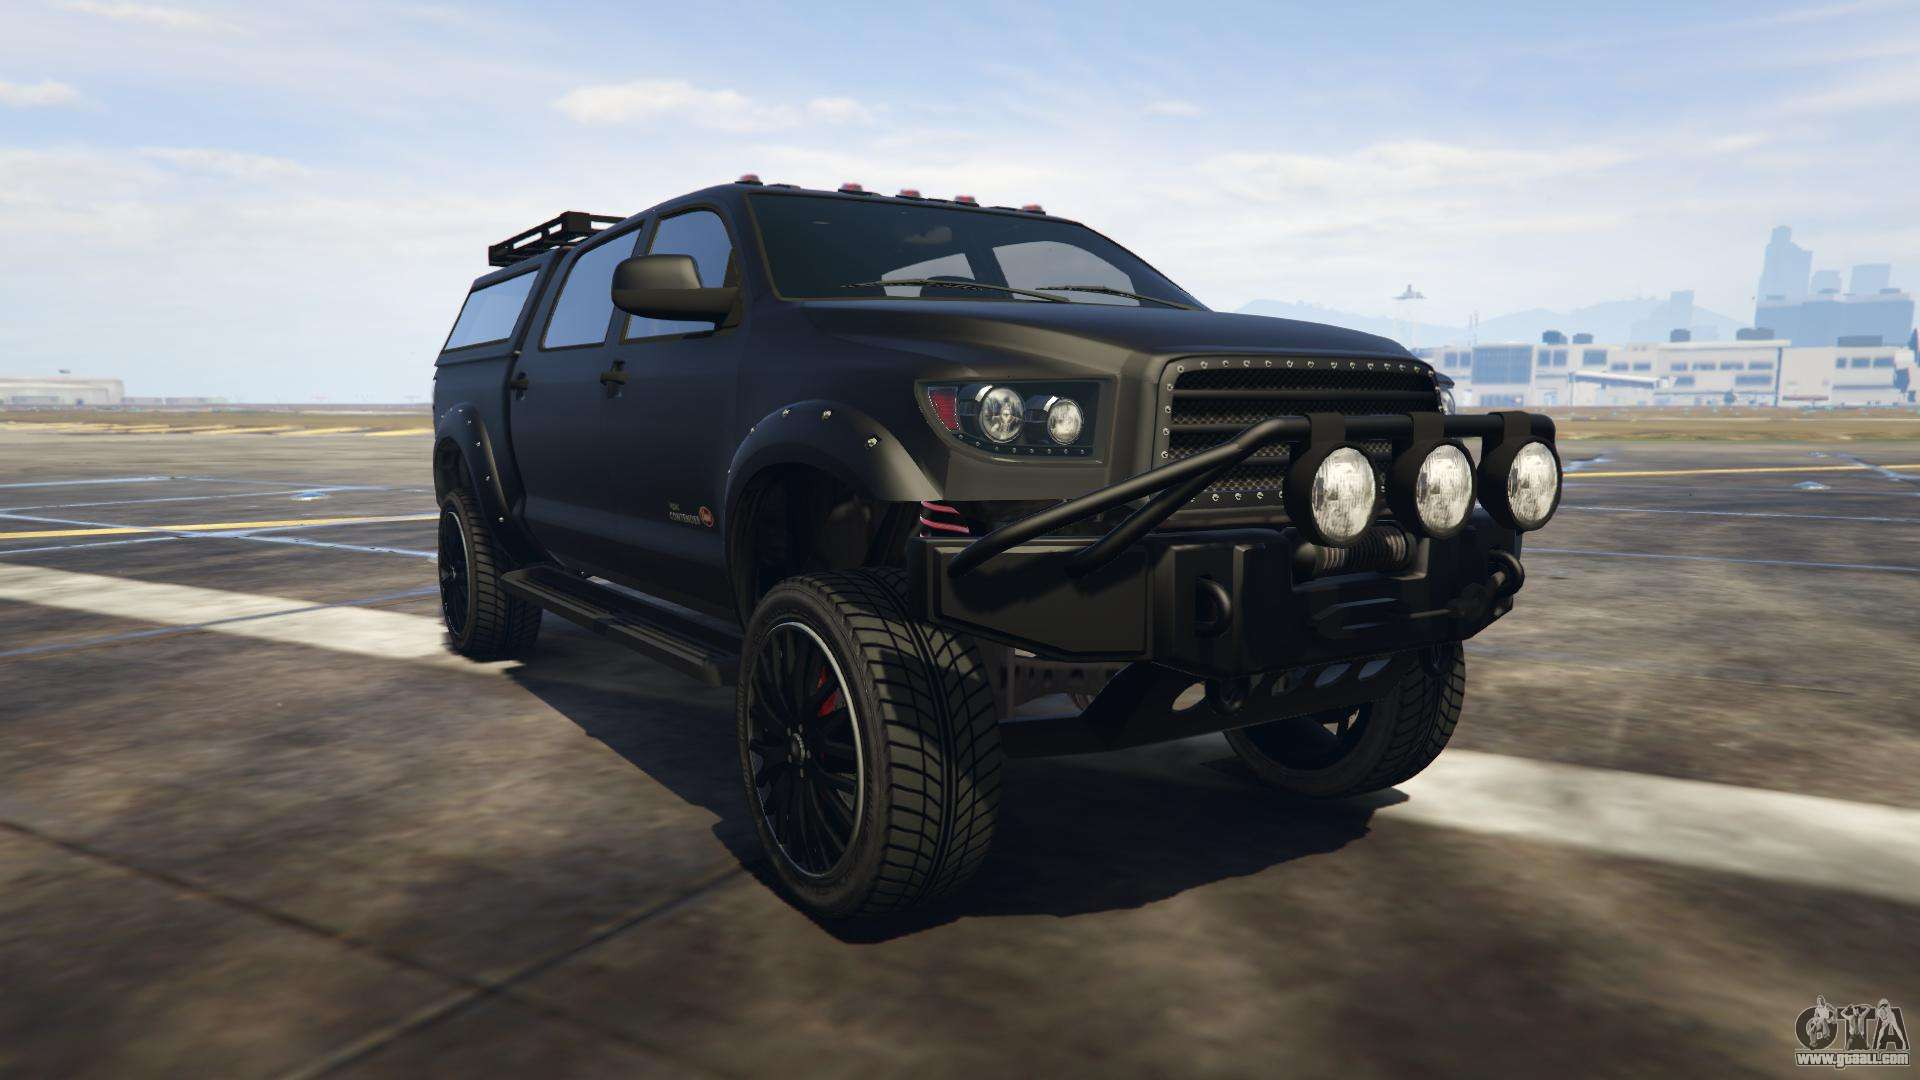 Vapid Contender from GTA online - front view